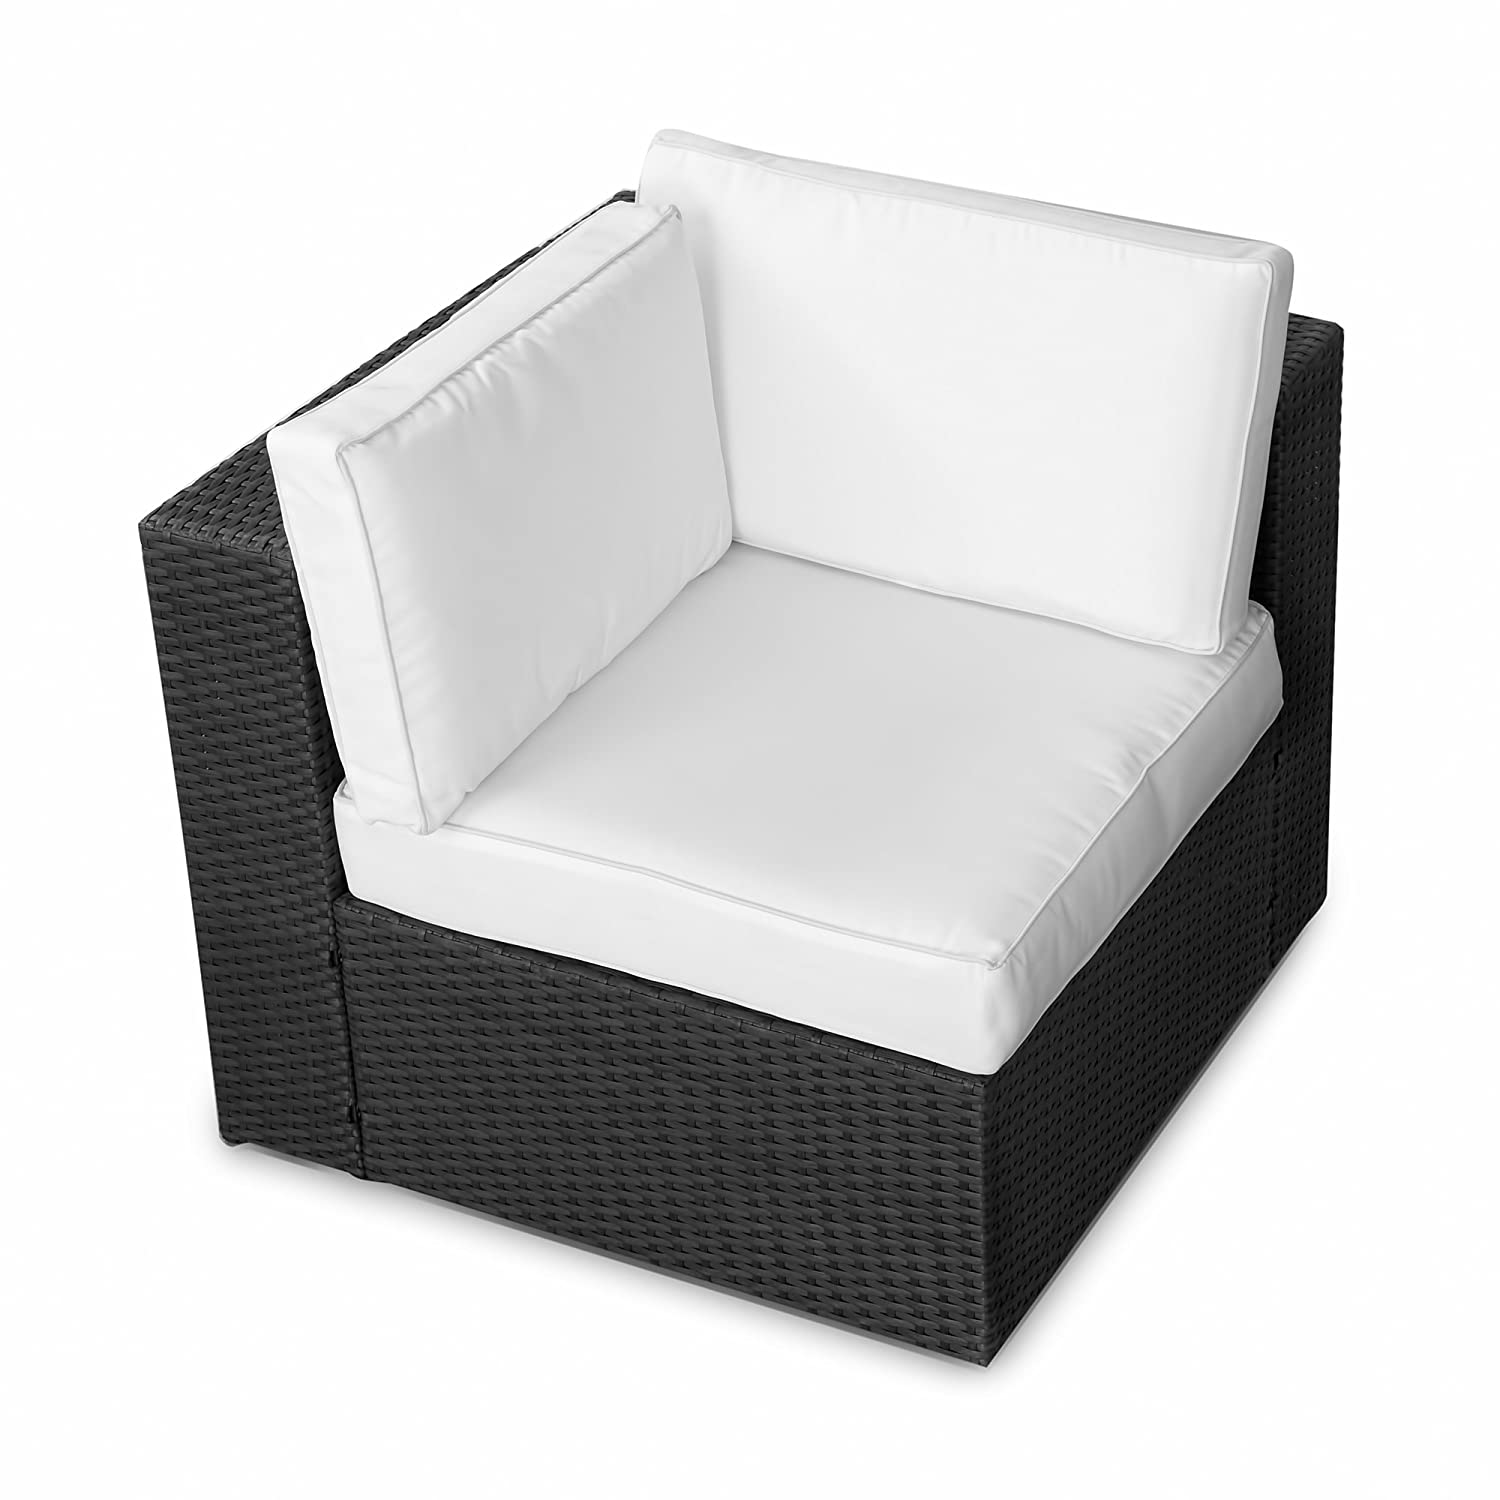 Loungemöbel outdoor schwarz  Amazon.de: (1er) Polyrattan Lounge Möbel Eck Sessel schwarz ...